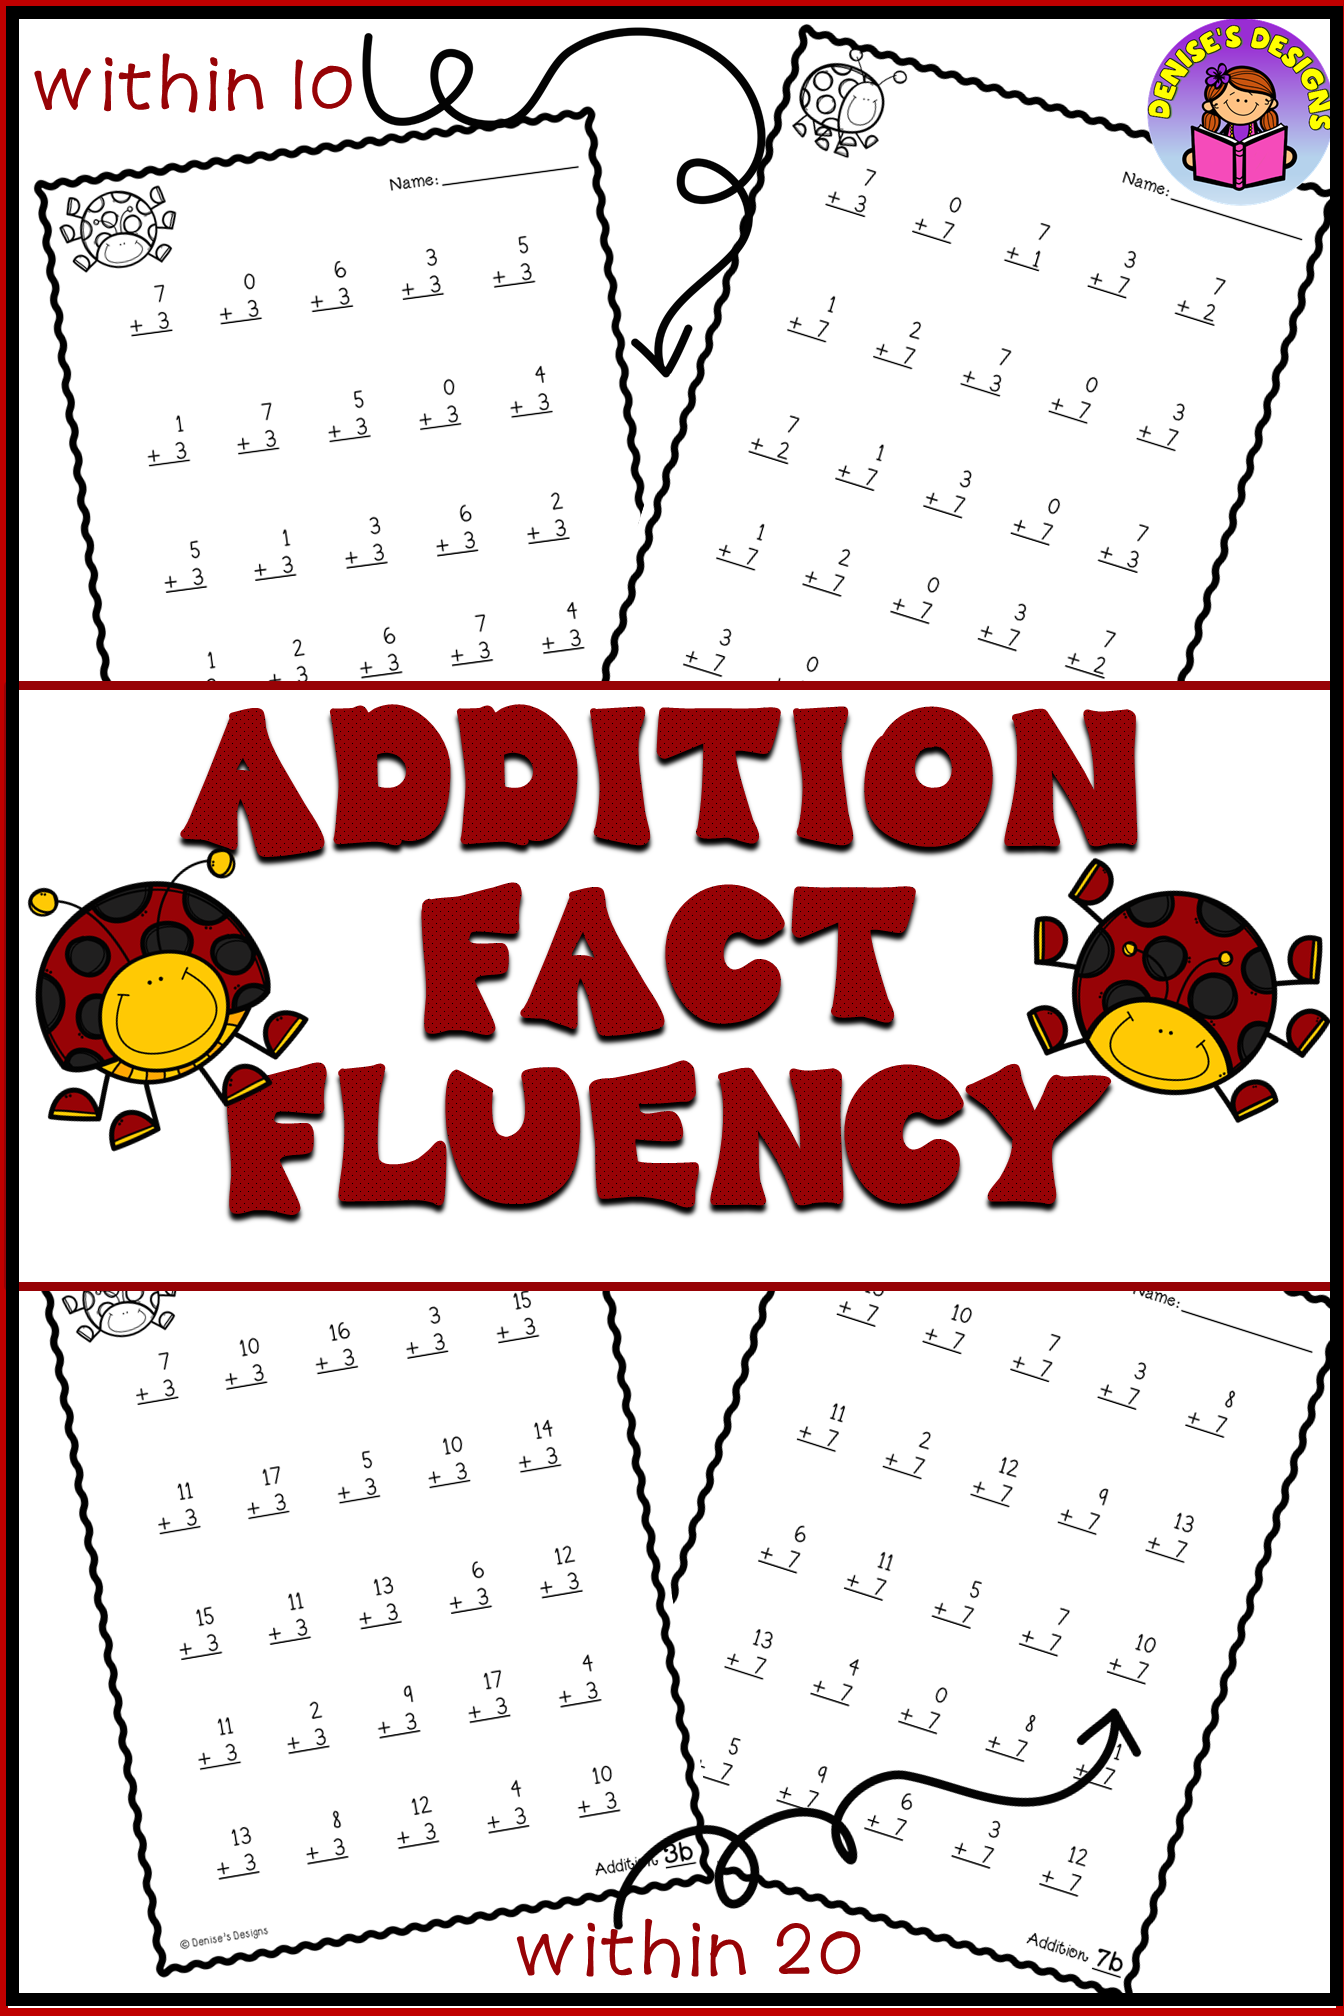 Addition Facts To 20 Worksheets Addition Facts Fact Fluency Addition Fact Fluency [ 2016 x 1344 Pixel ]